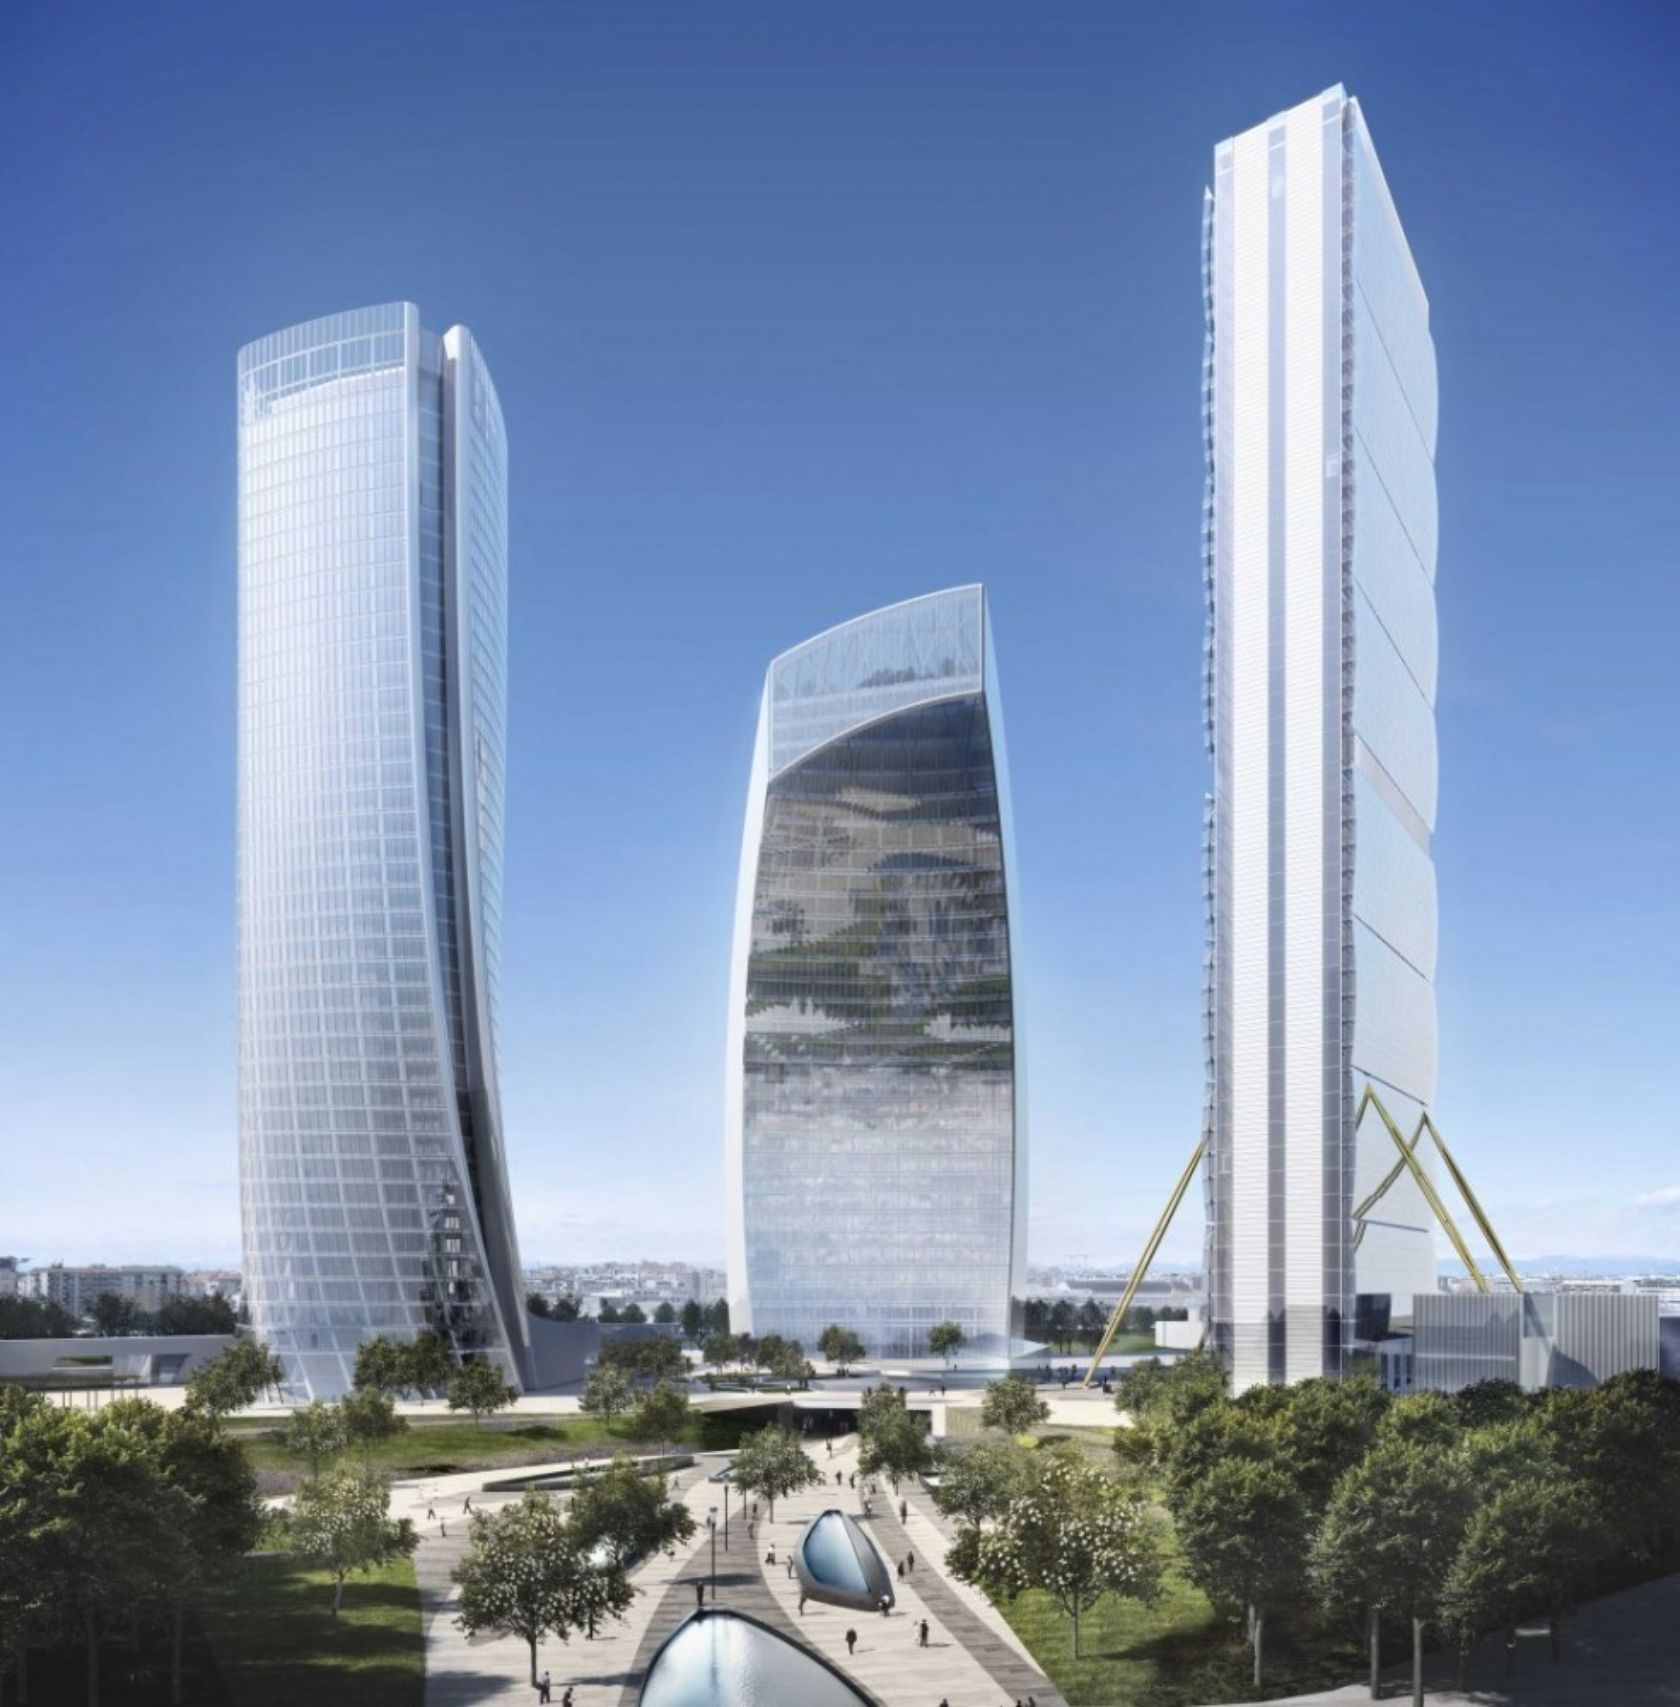 Zahas And Libeskinds Citylife Milano Is Big Brand Architecture At Its